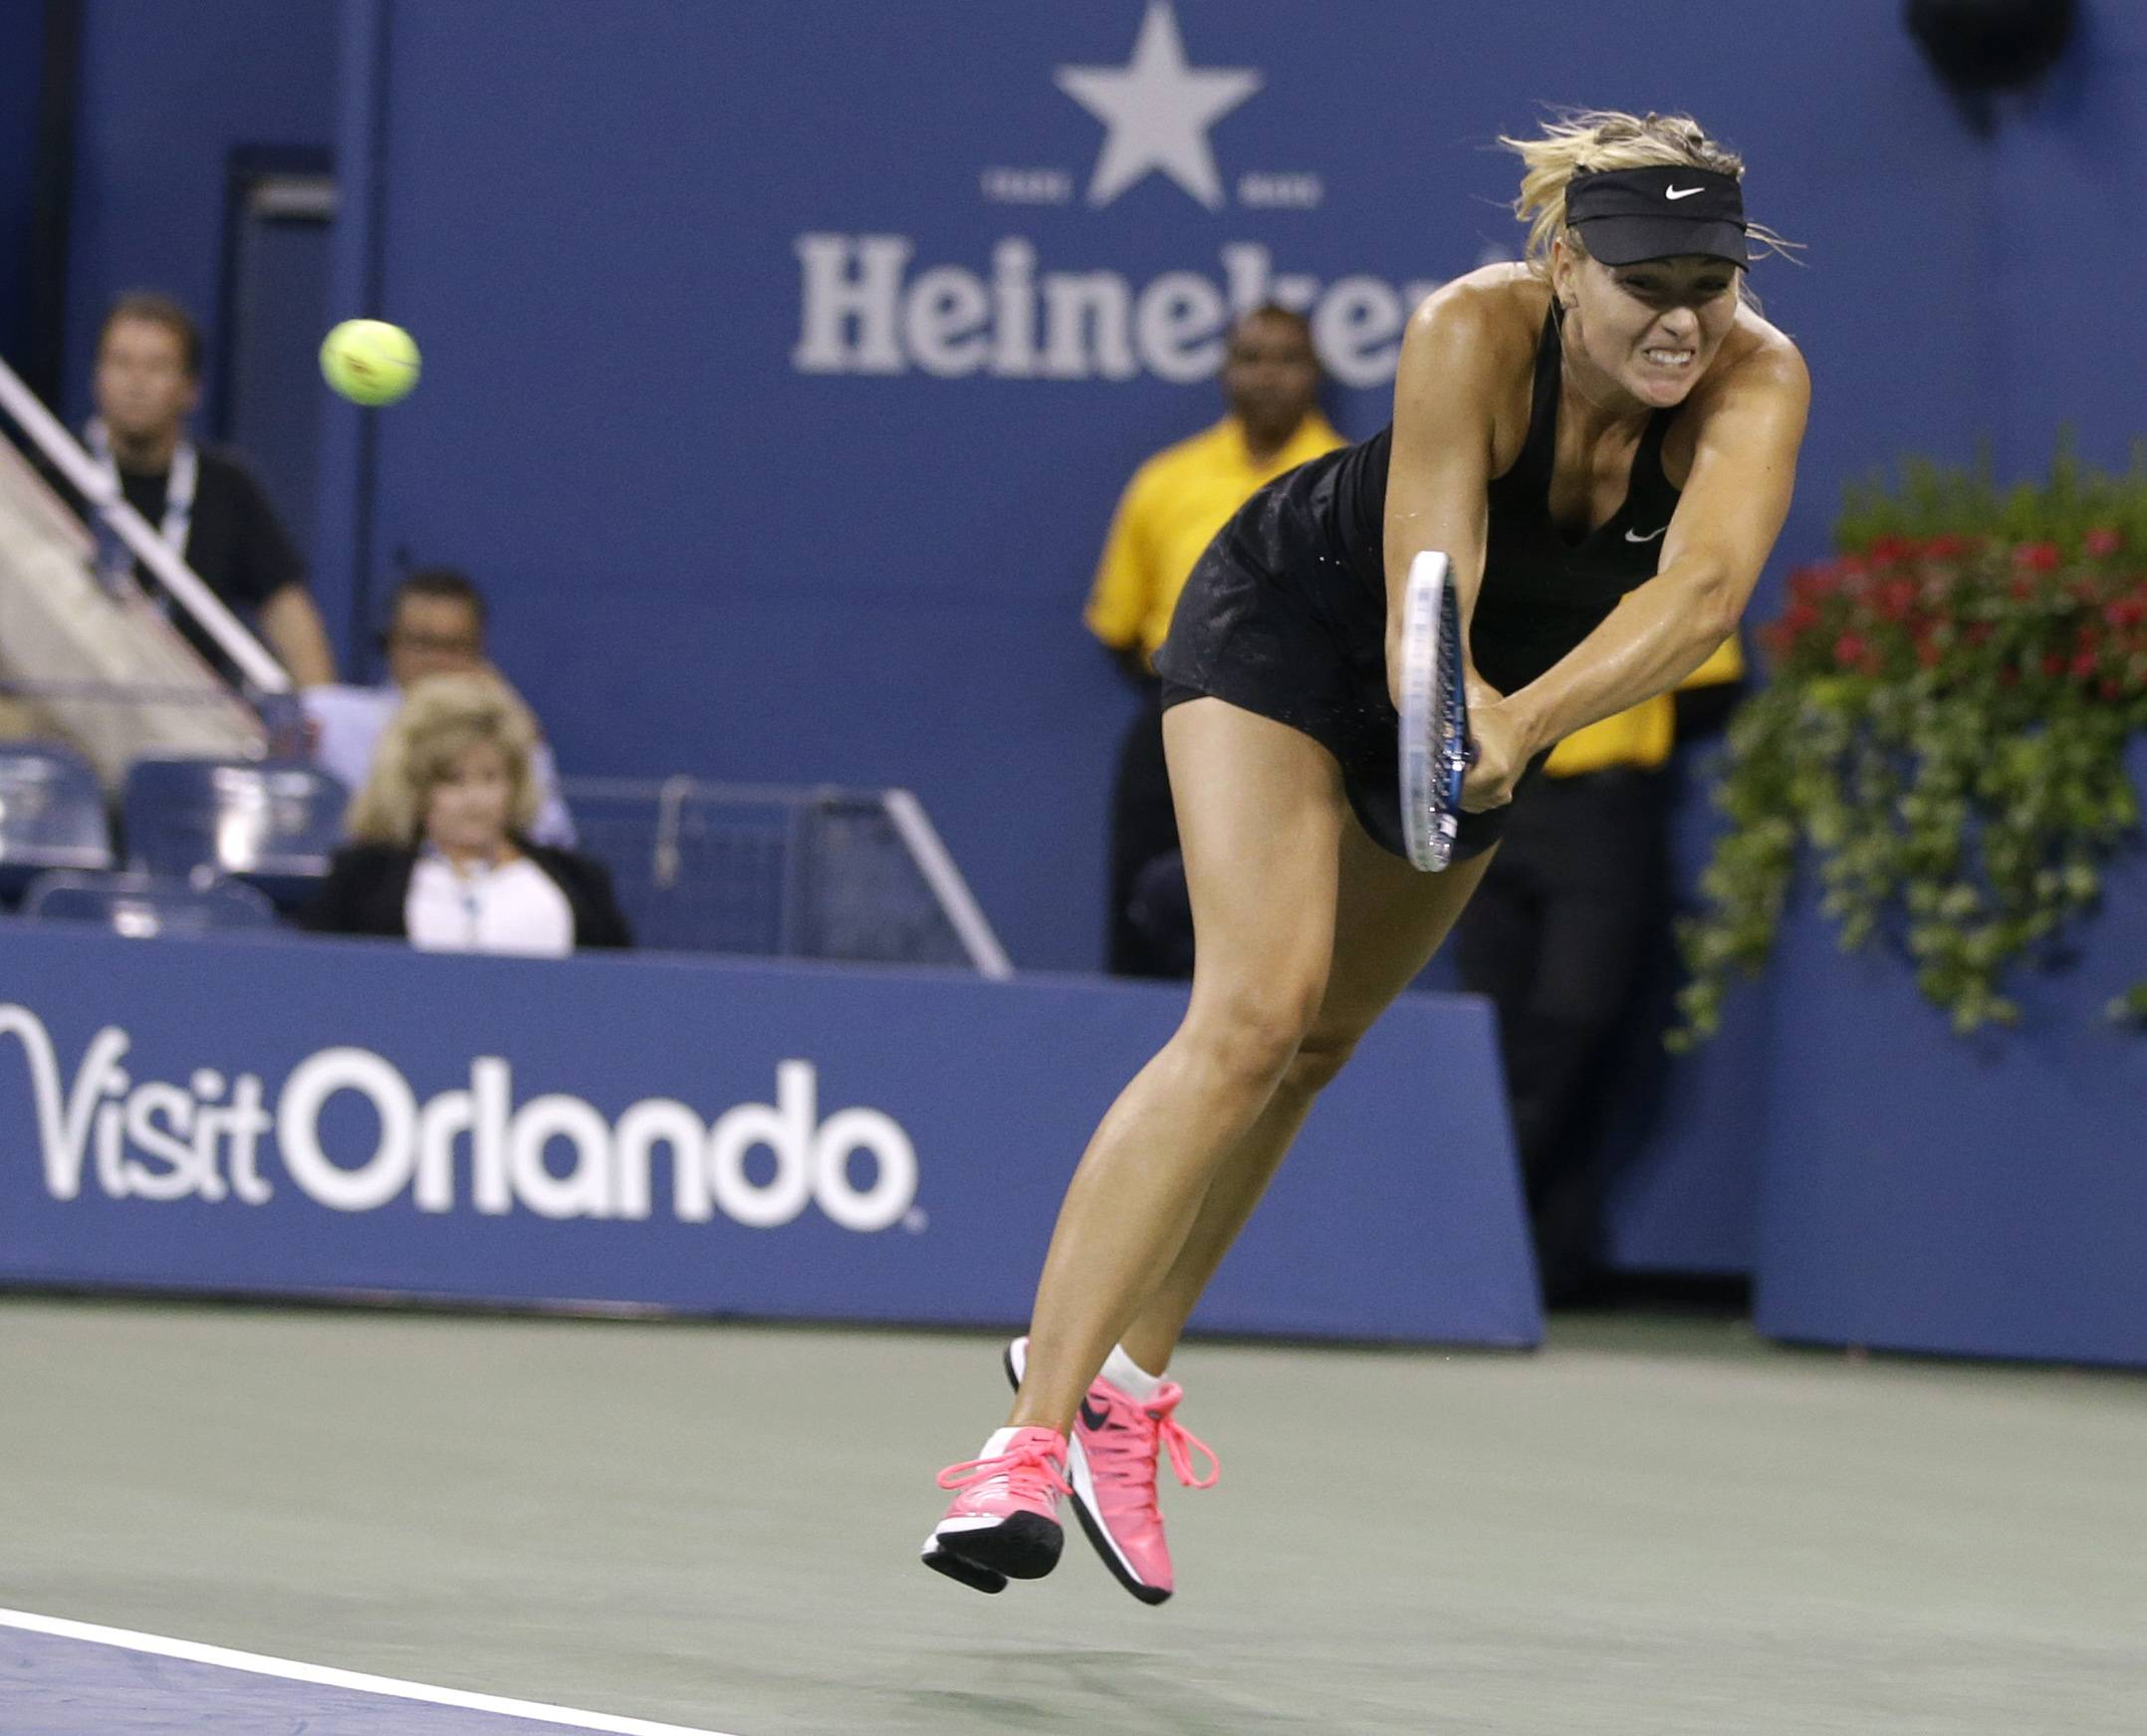 Maria Sharapova returns a shot to Maria Kirilenko on Monday during the opening round of the U.S. Open in New York.